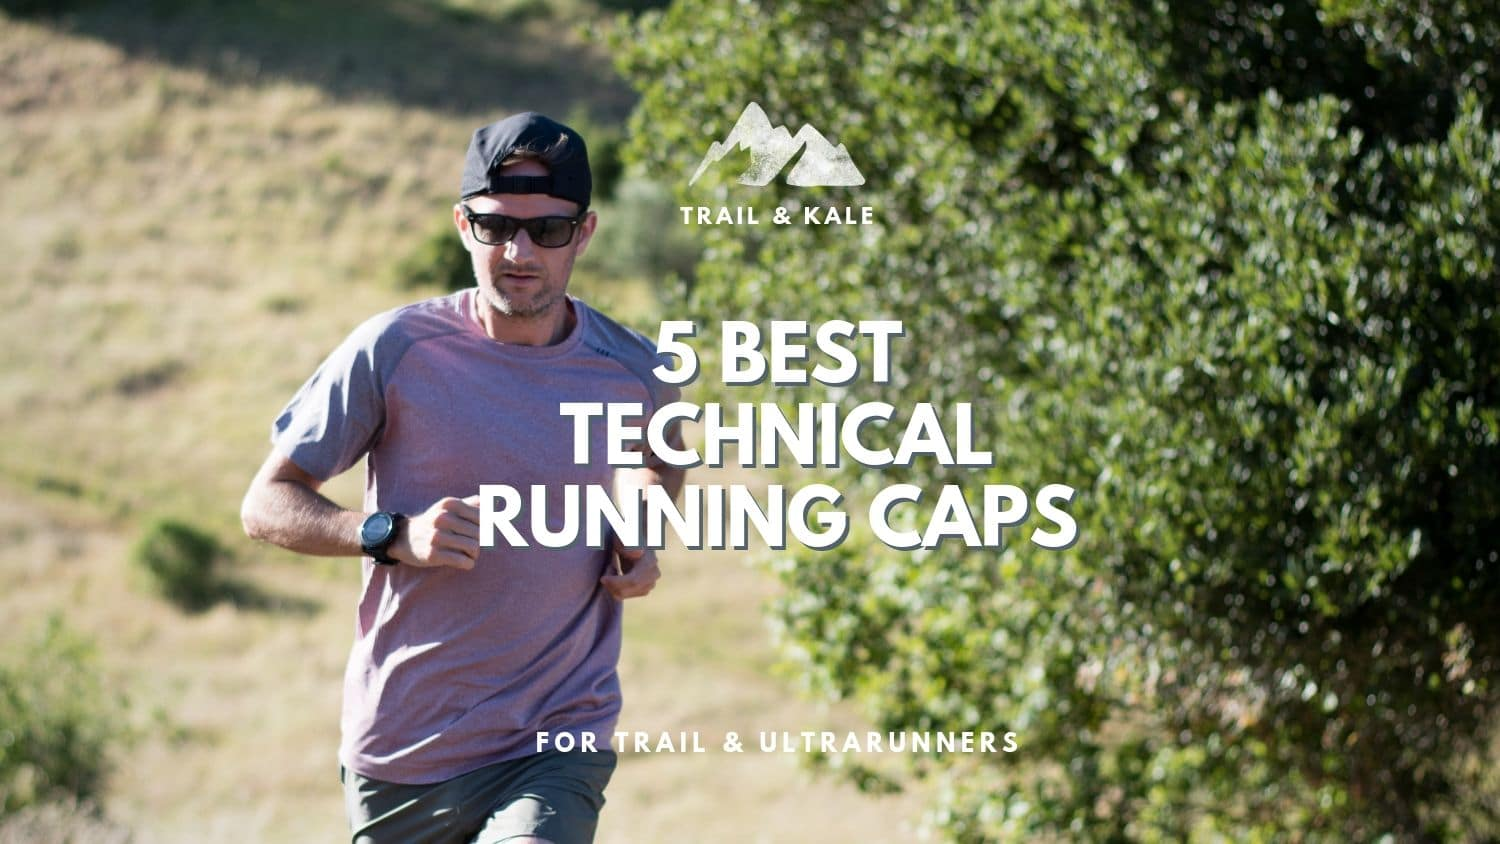 Best Running Hats 2019: Top 5 Technical Caps for Trail